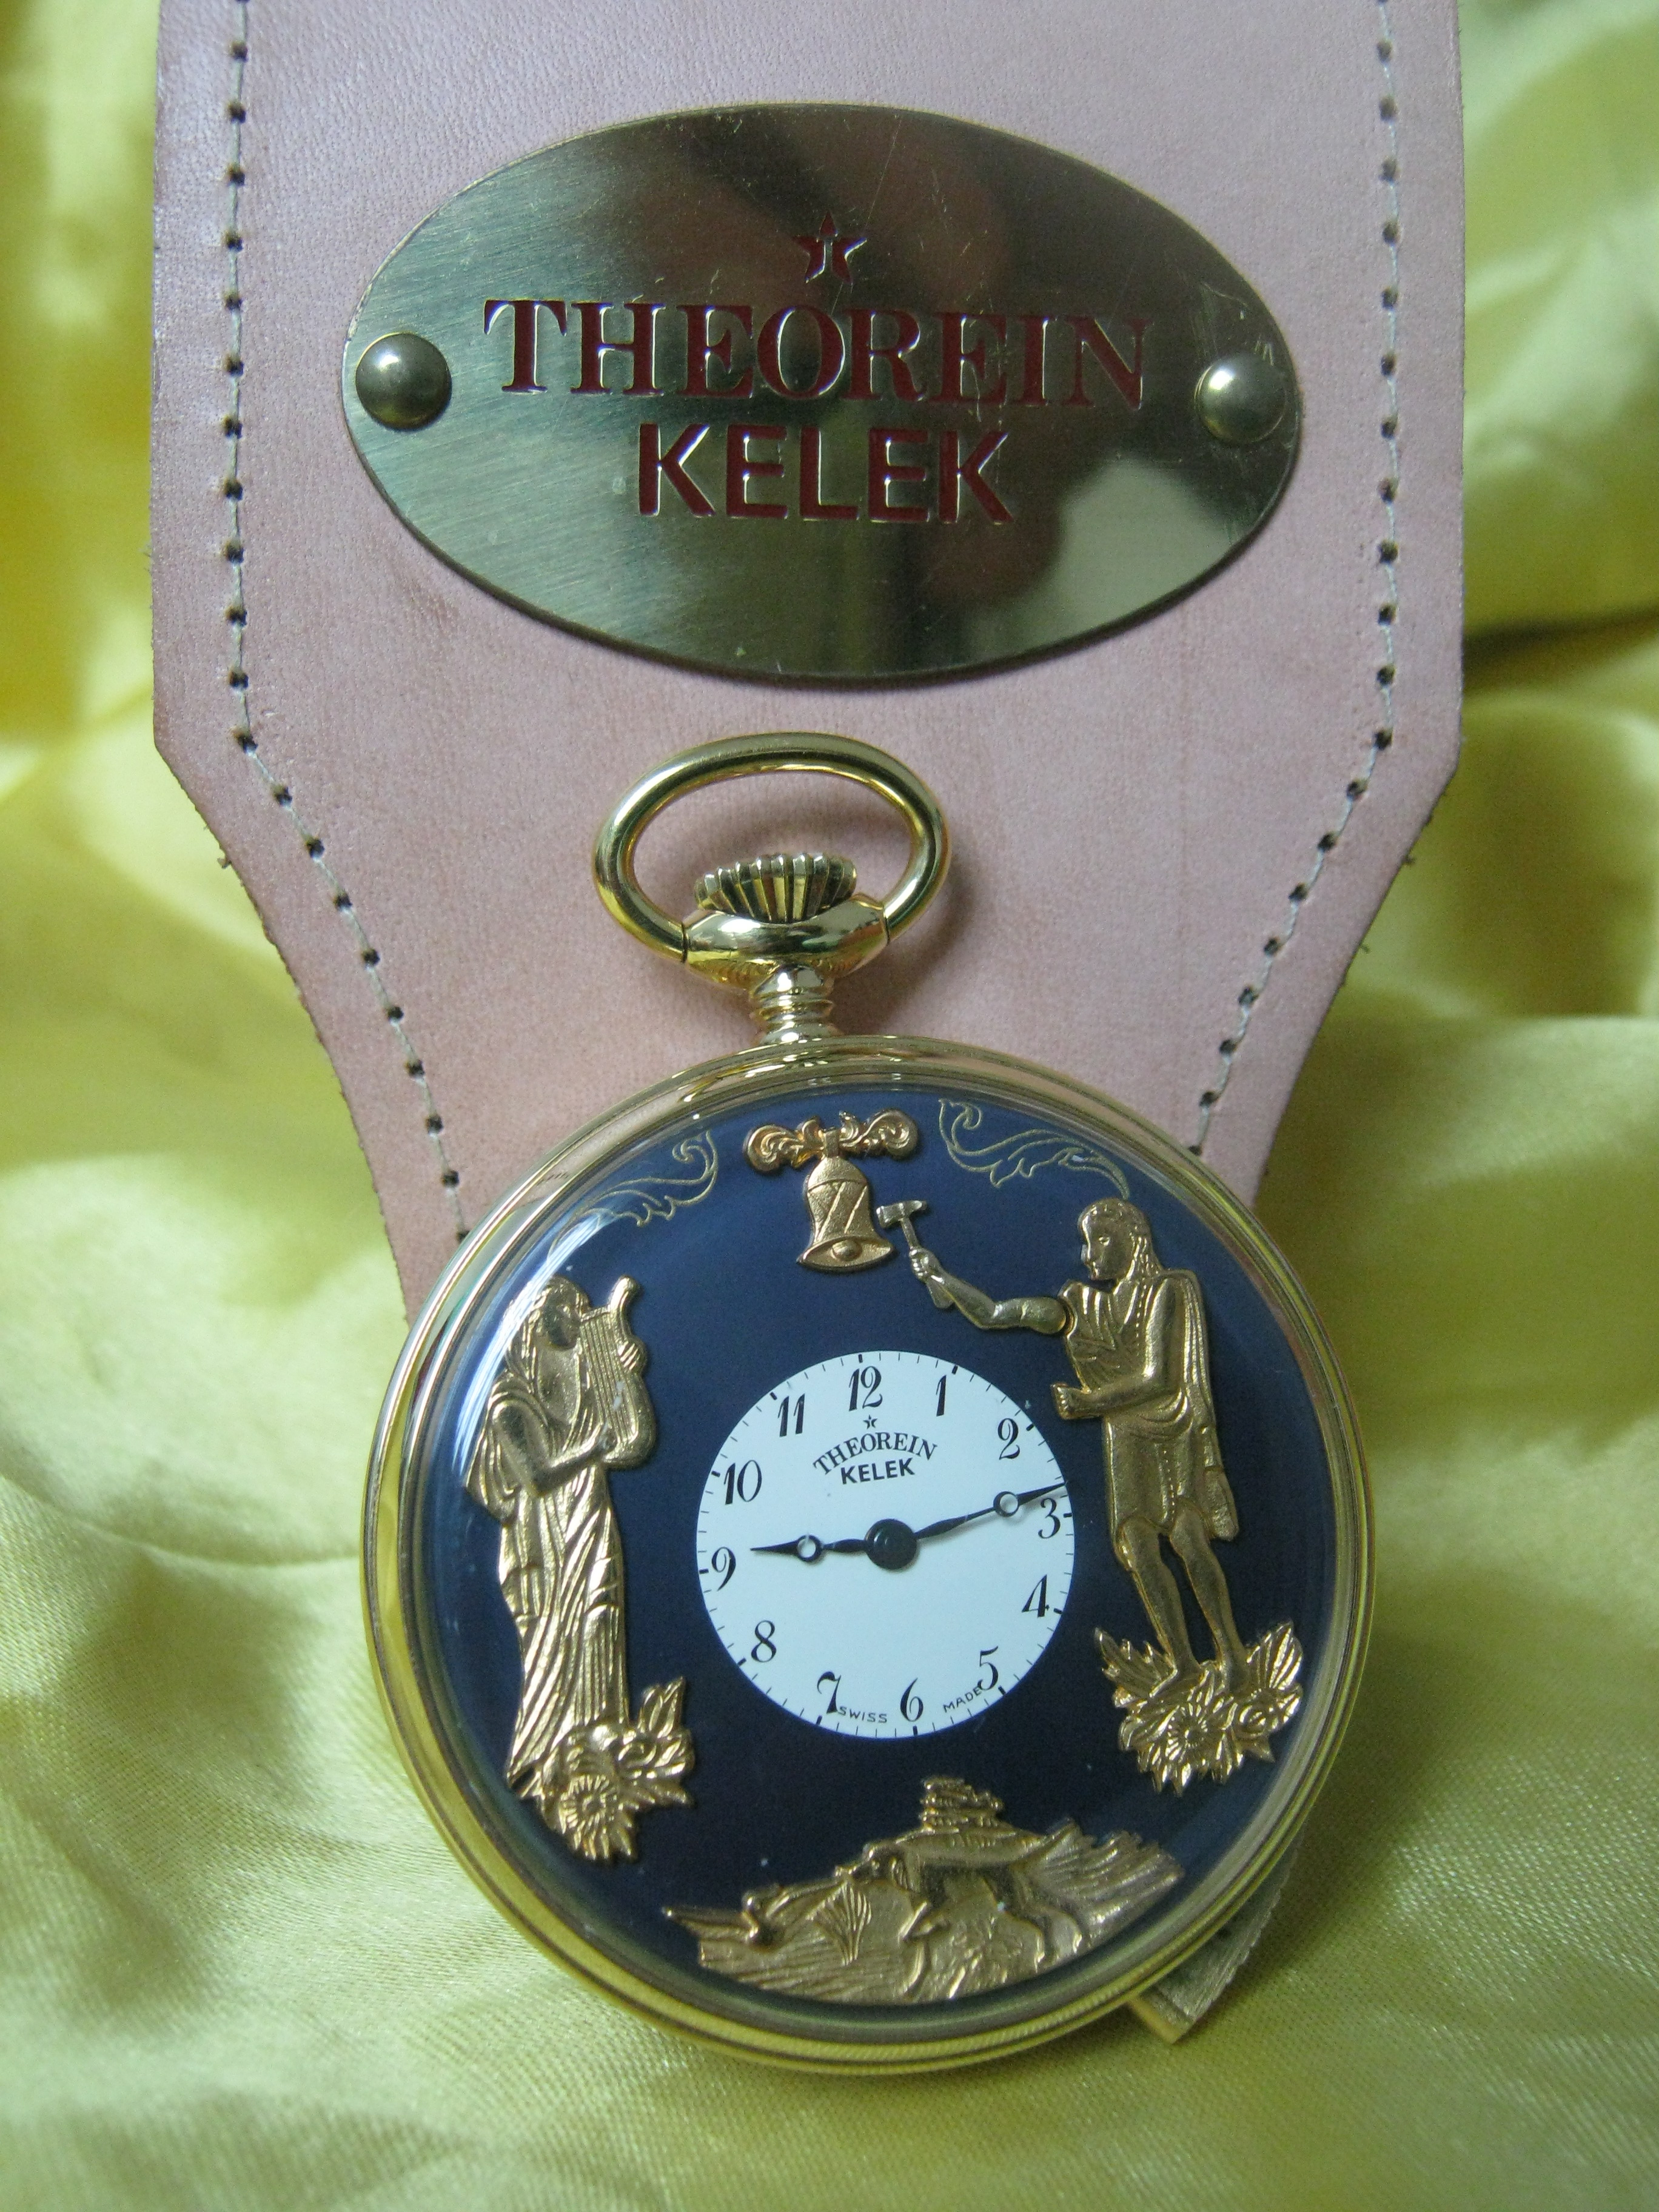 Theorein pocket watch Ripetition Hours and 5 Minutes gold plated nos | San Giorgio a Cremano